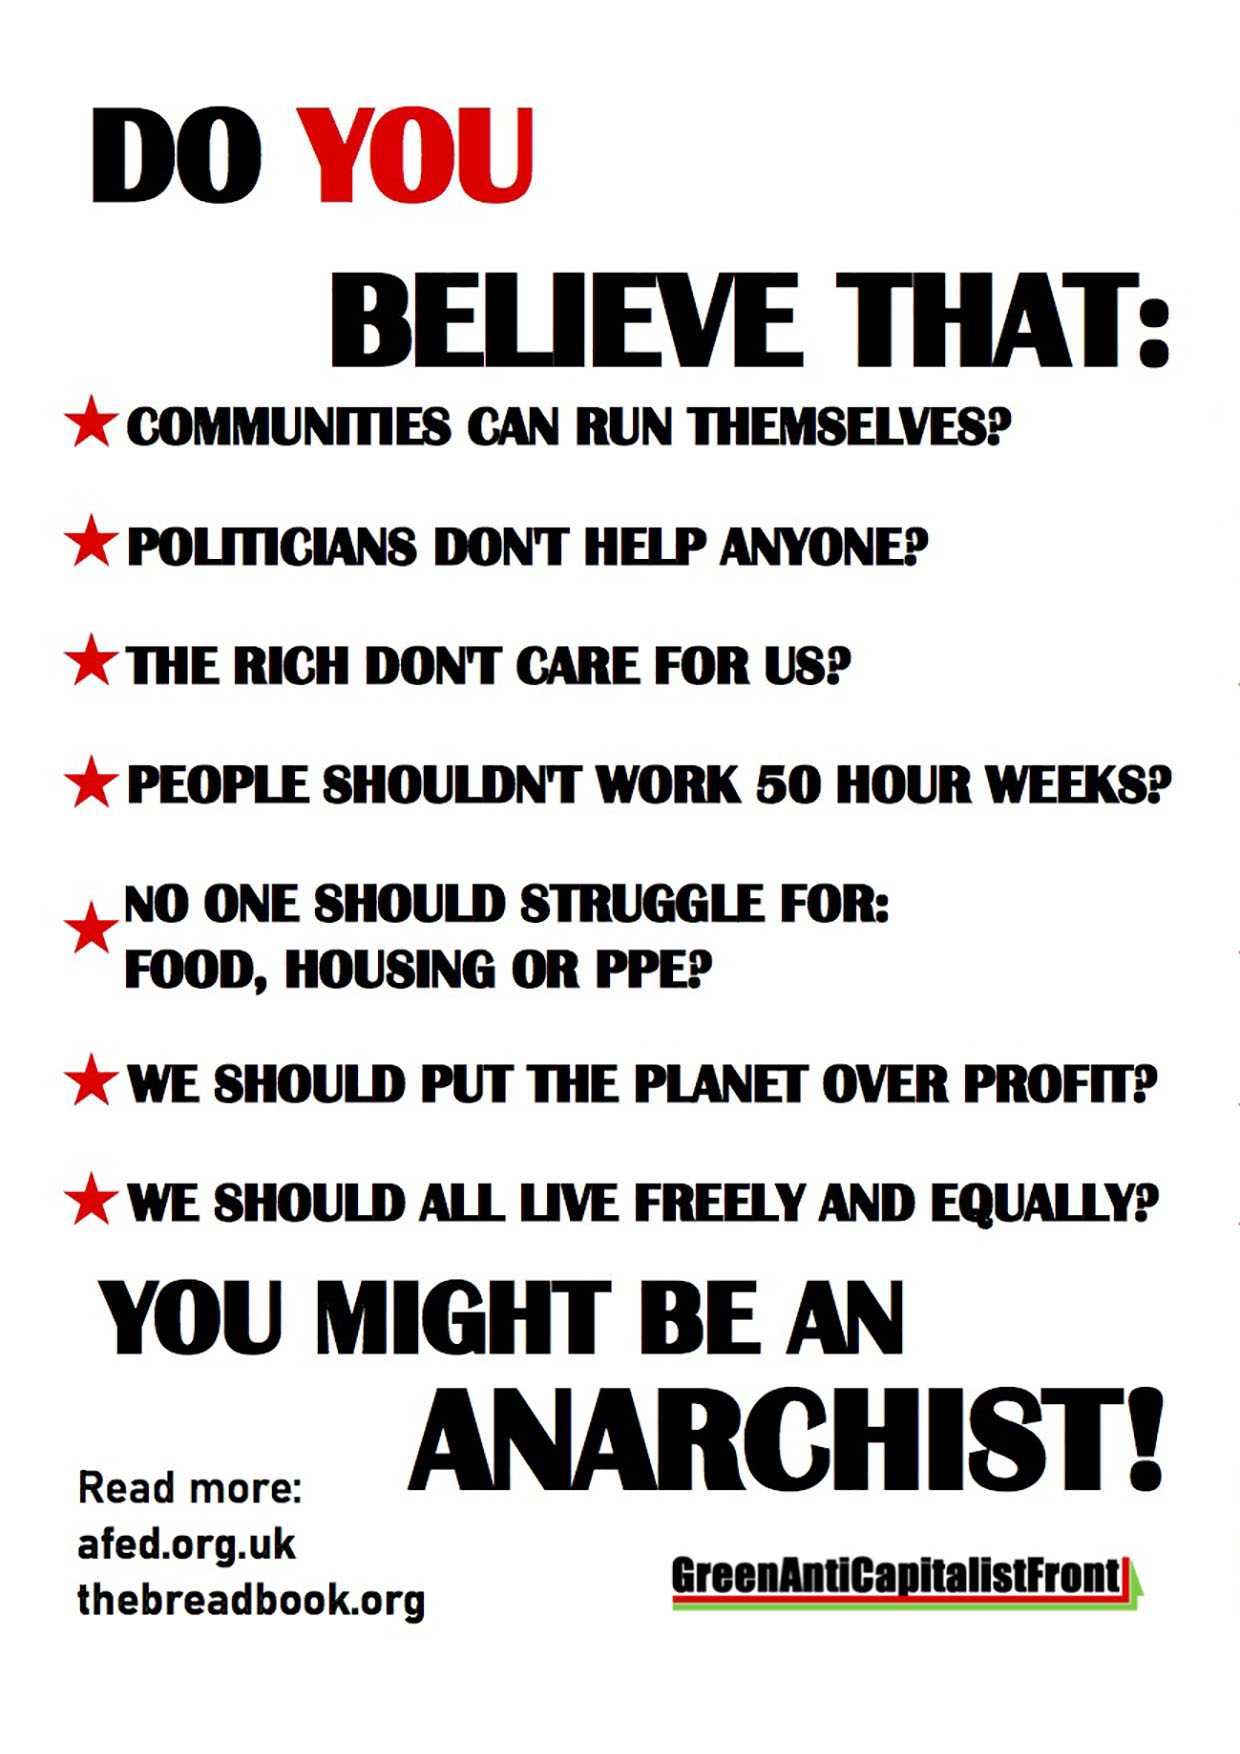 You might be an Anarchist Poster